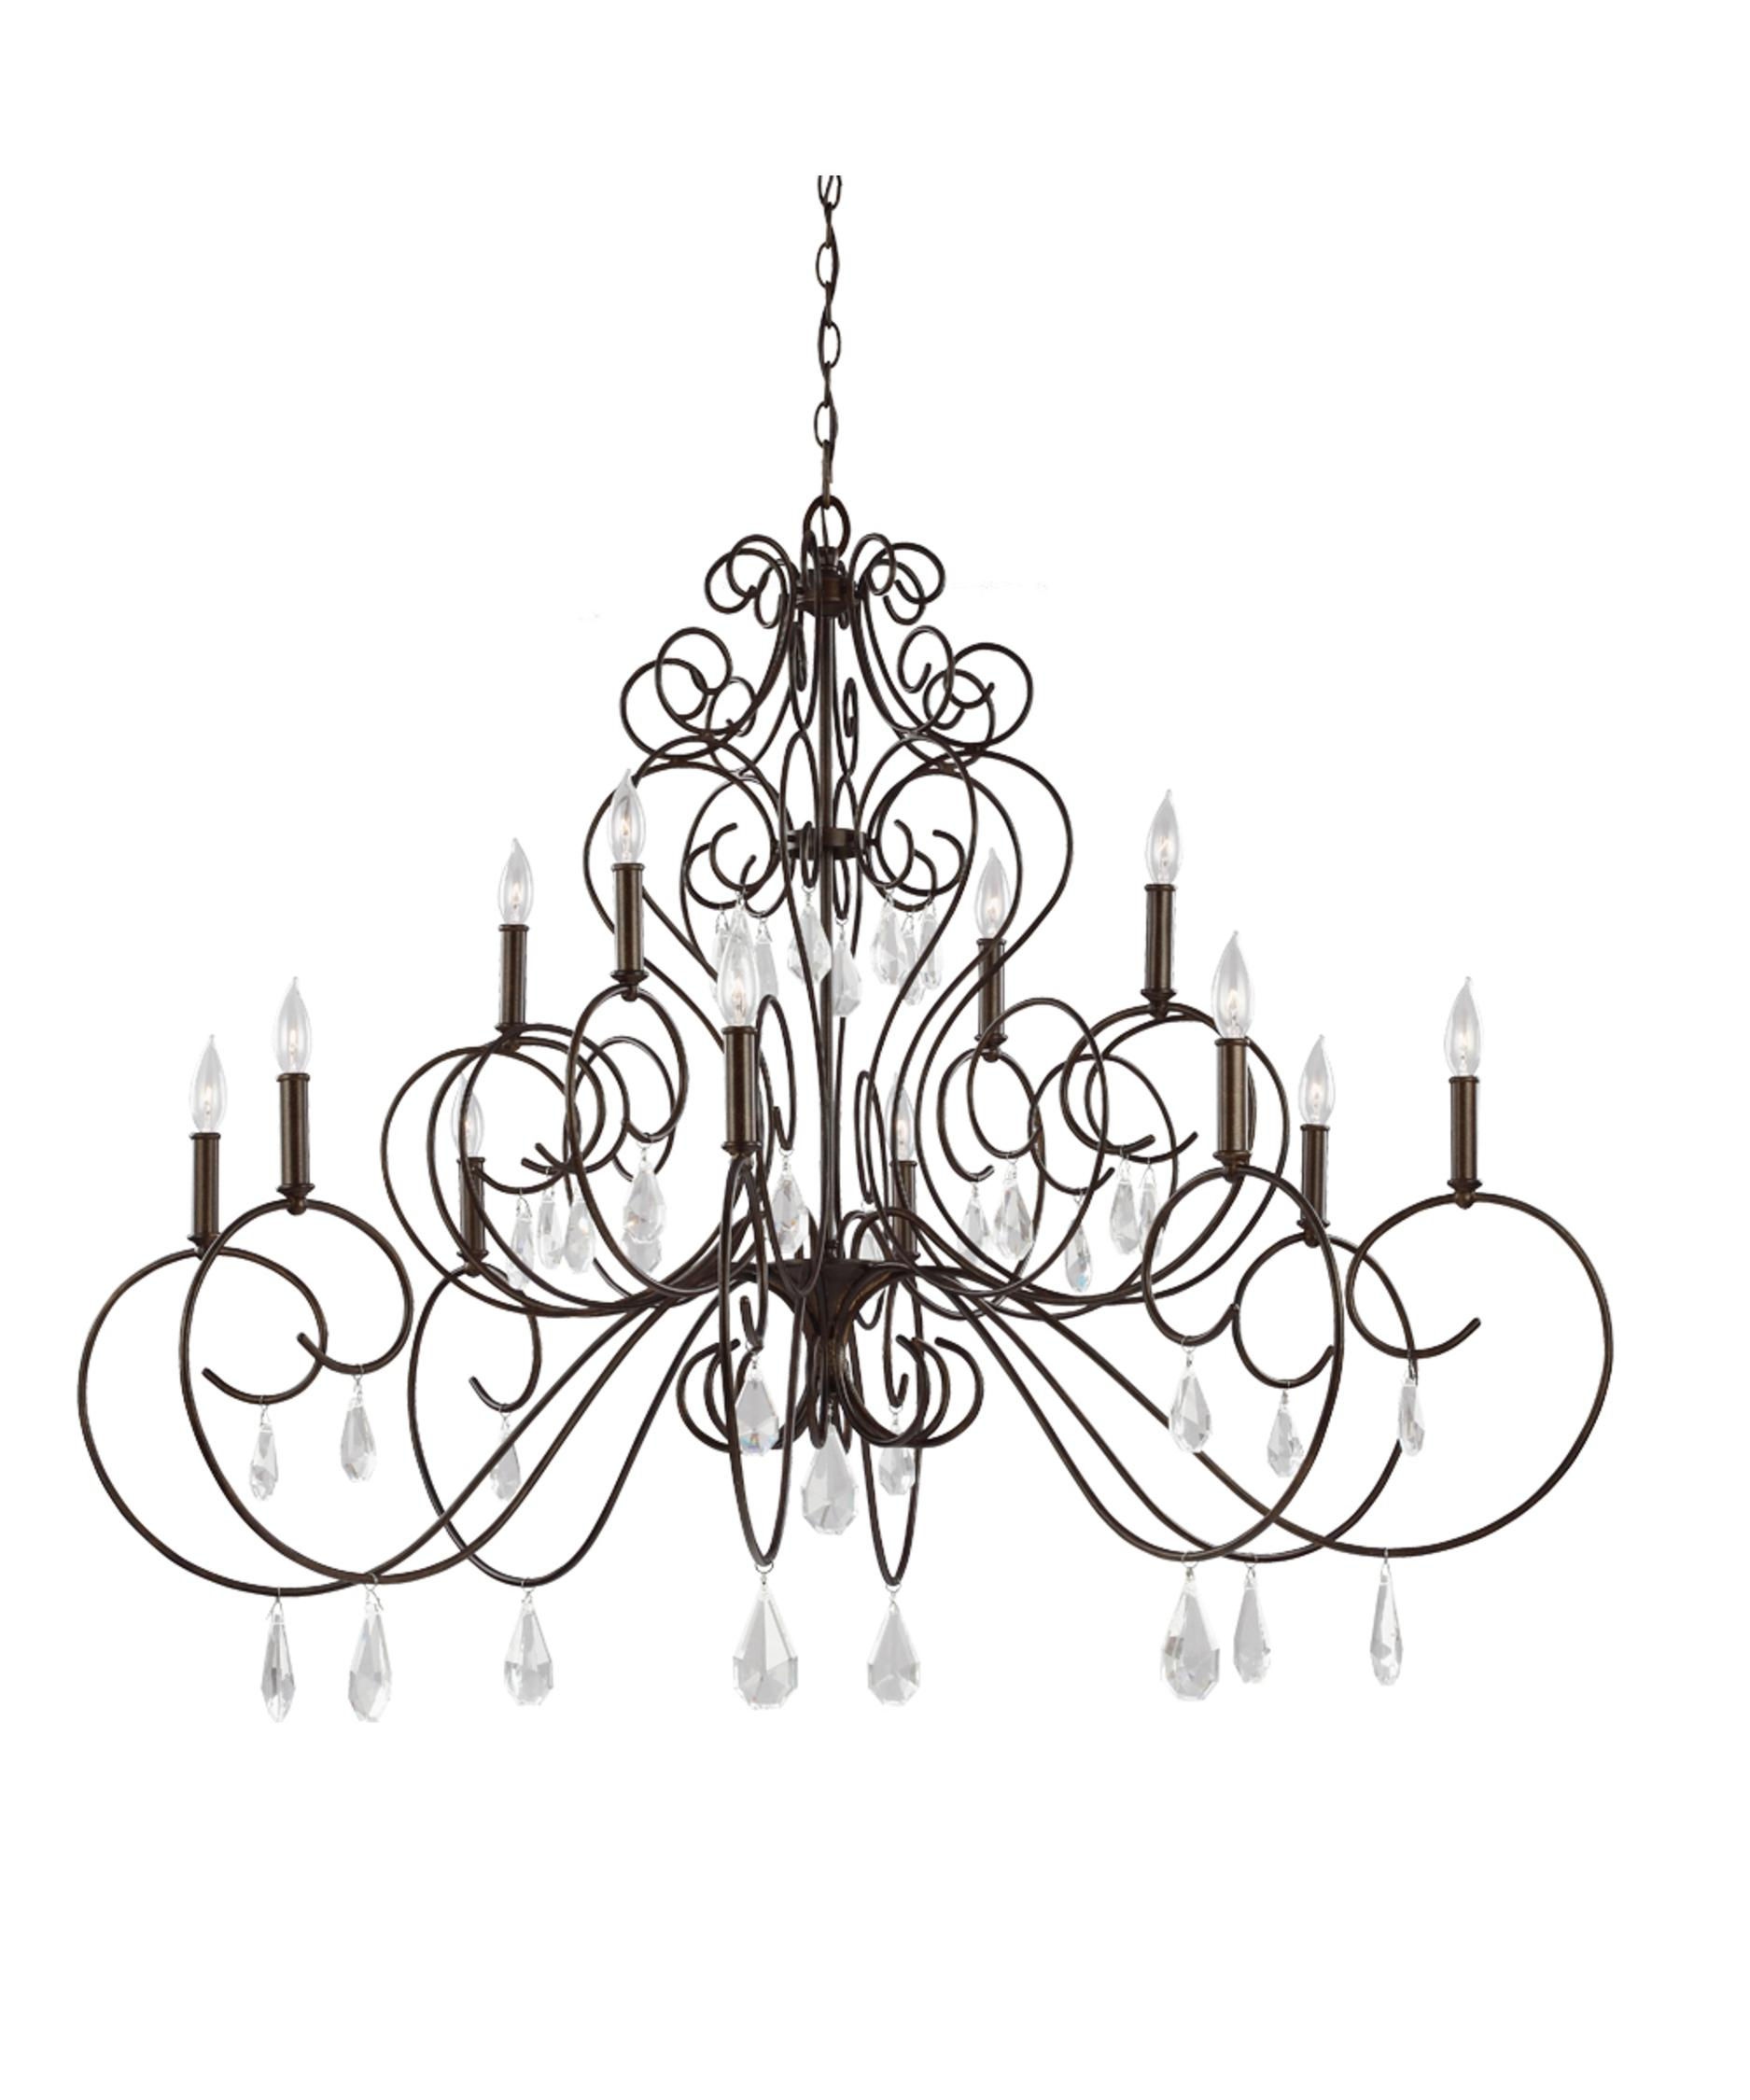 Murray Feiss Angelette 50 Inch Wide 12 Light Chandelier – Murray Feiss Chandeliers